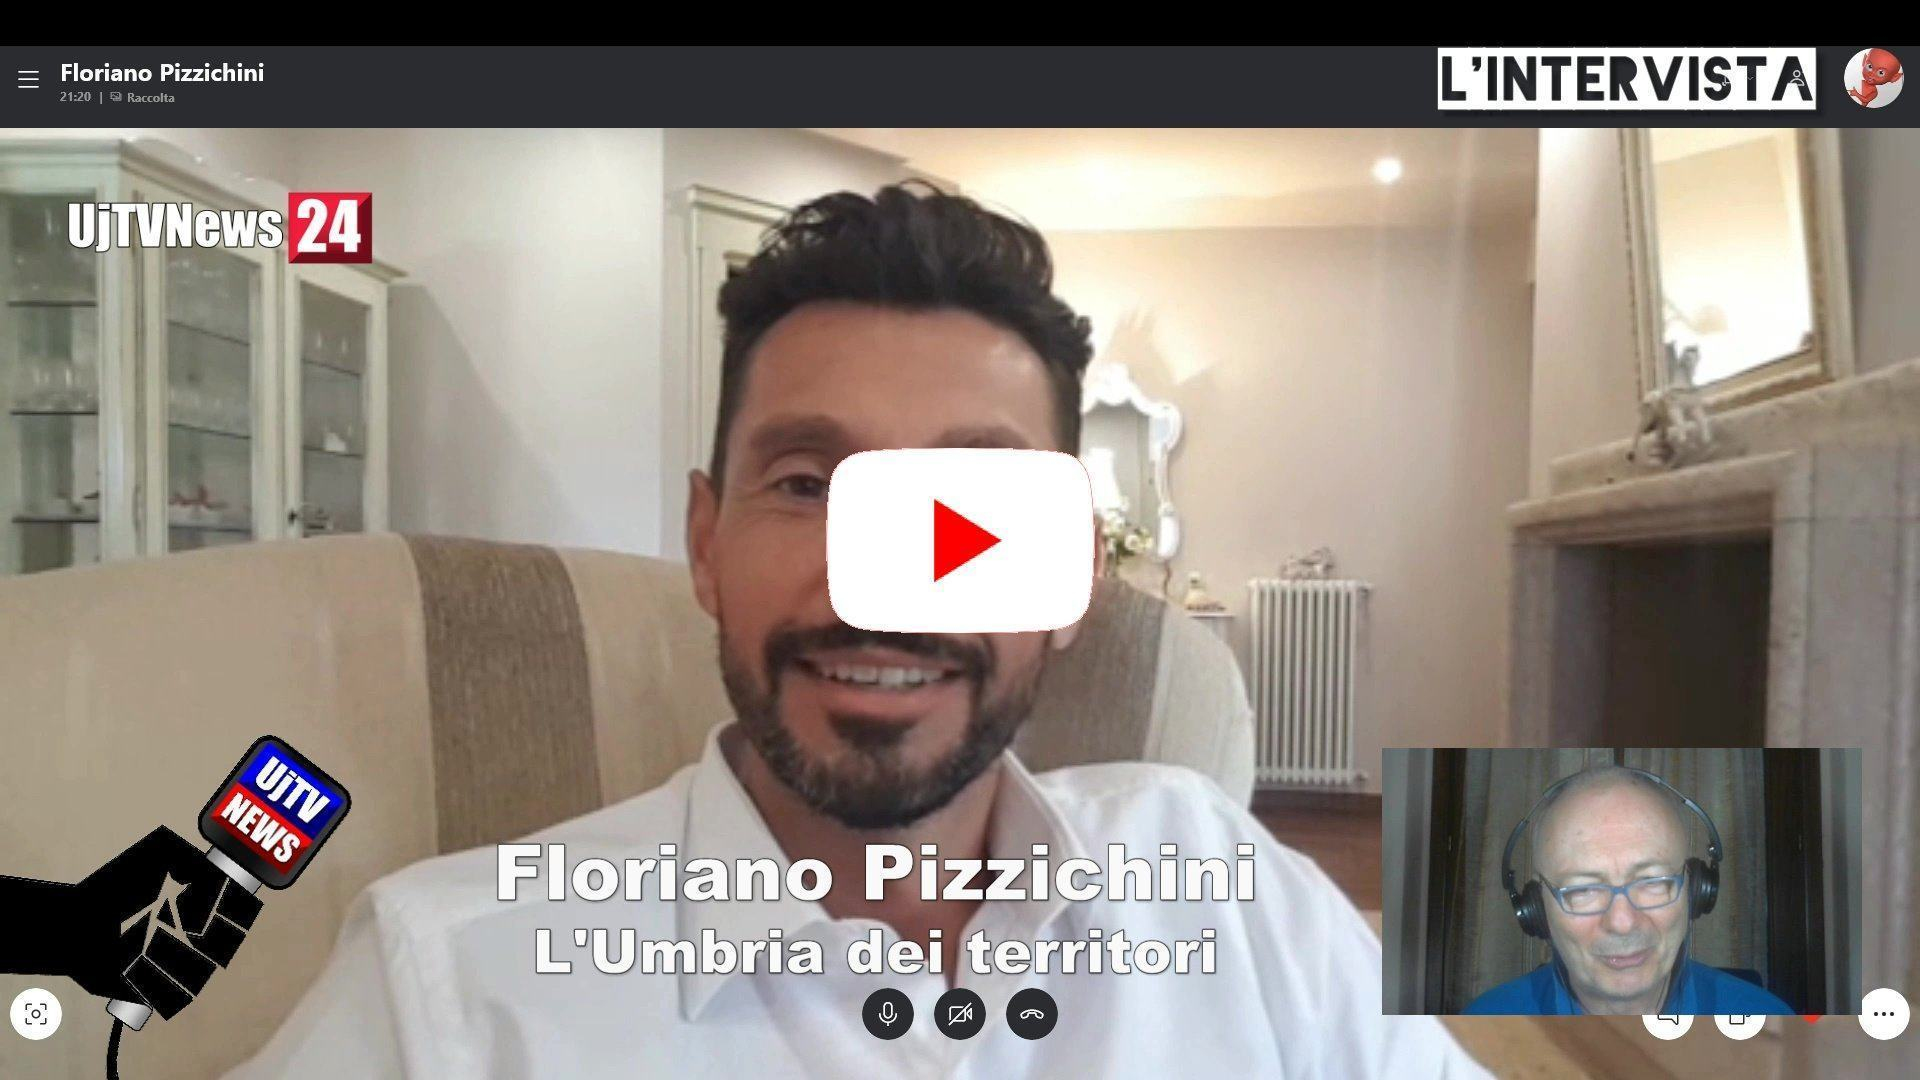 Umbria dei Territori Floriano Pizzichini (Udt) a L'Intervista su Umbria Journal TV